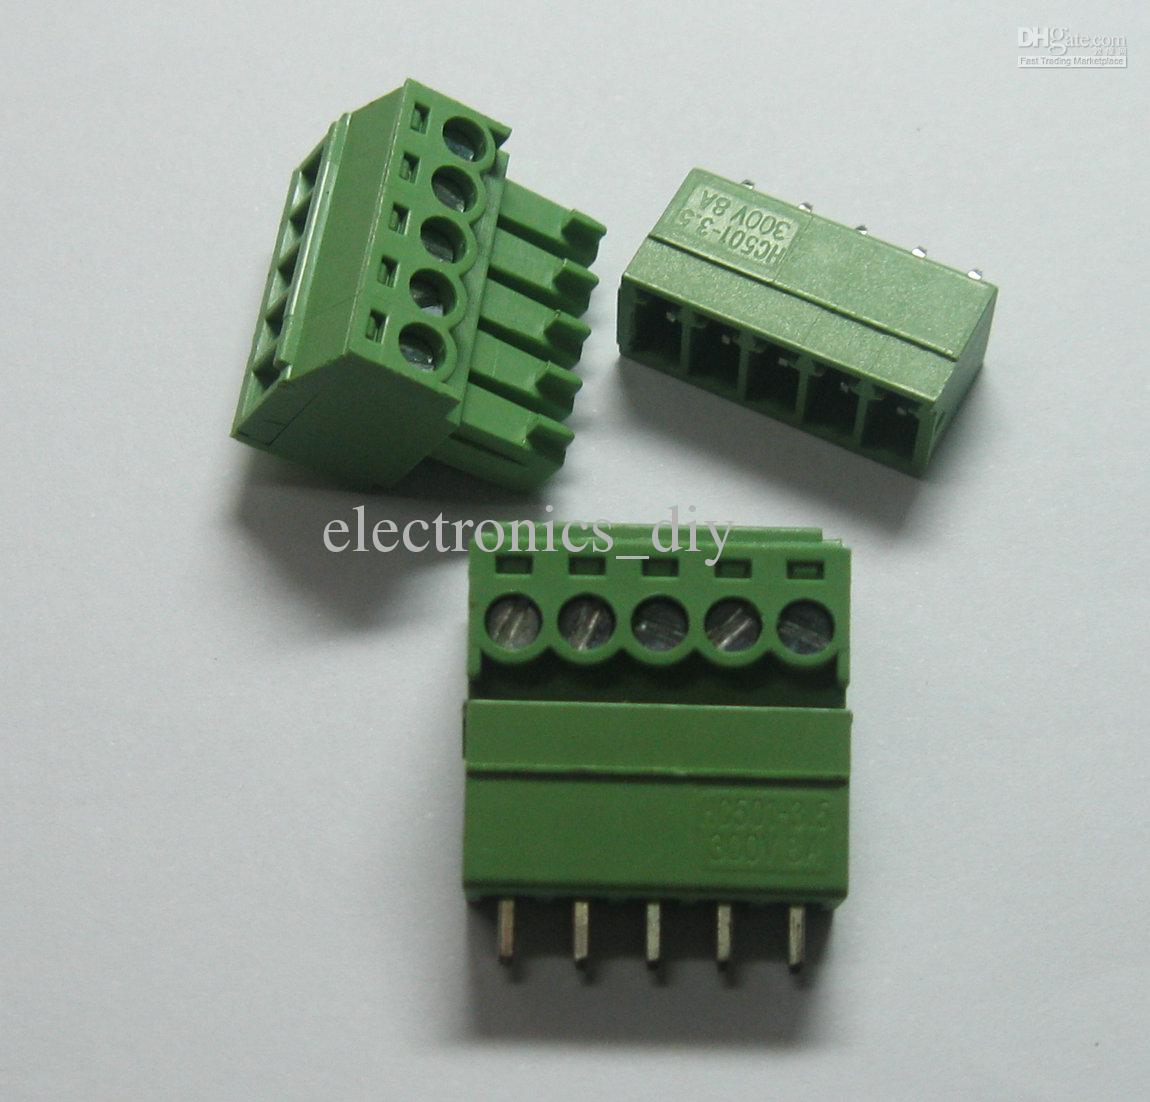 Cool Car Digram Thick Car Alarm Installation Diagram Round Hh Strat Wiring How To Install A Remote Car Starter Video Young Les Paul 3 Way Switch BrownGretsch Wiring Harness Way Pitch 3.5mm Screw Terminal Block Connector Green ..